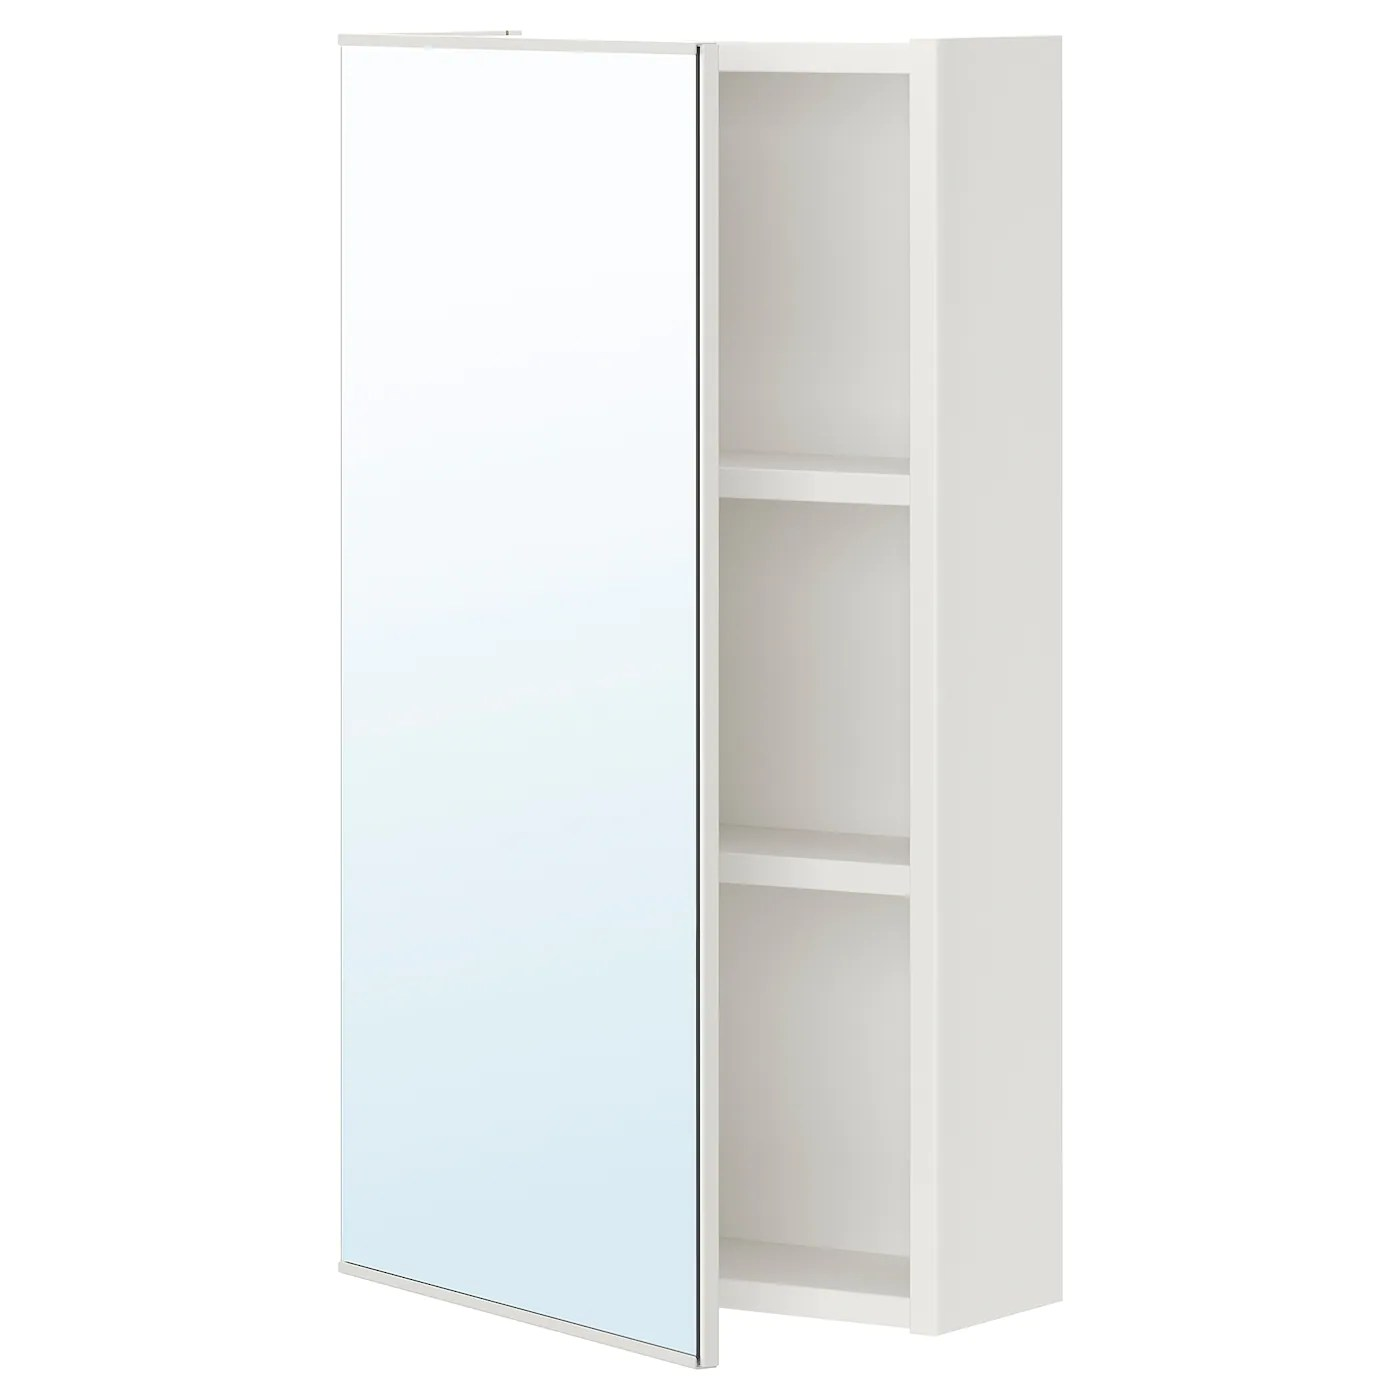 Spiegelschrank Ikea Enhet Mirror Cabinet With 1 Door - White - Ikea